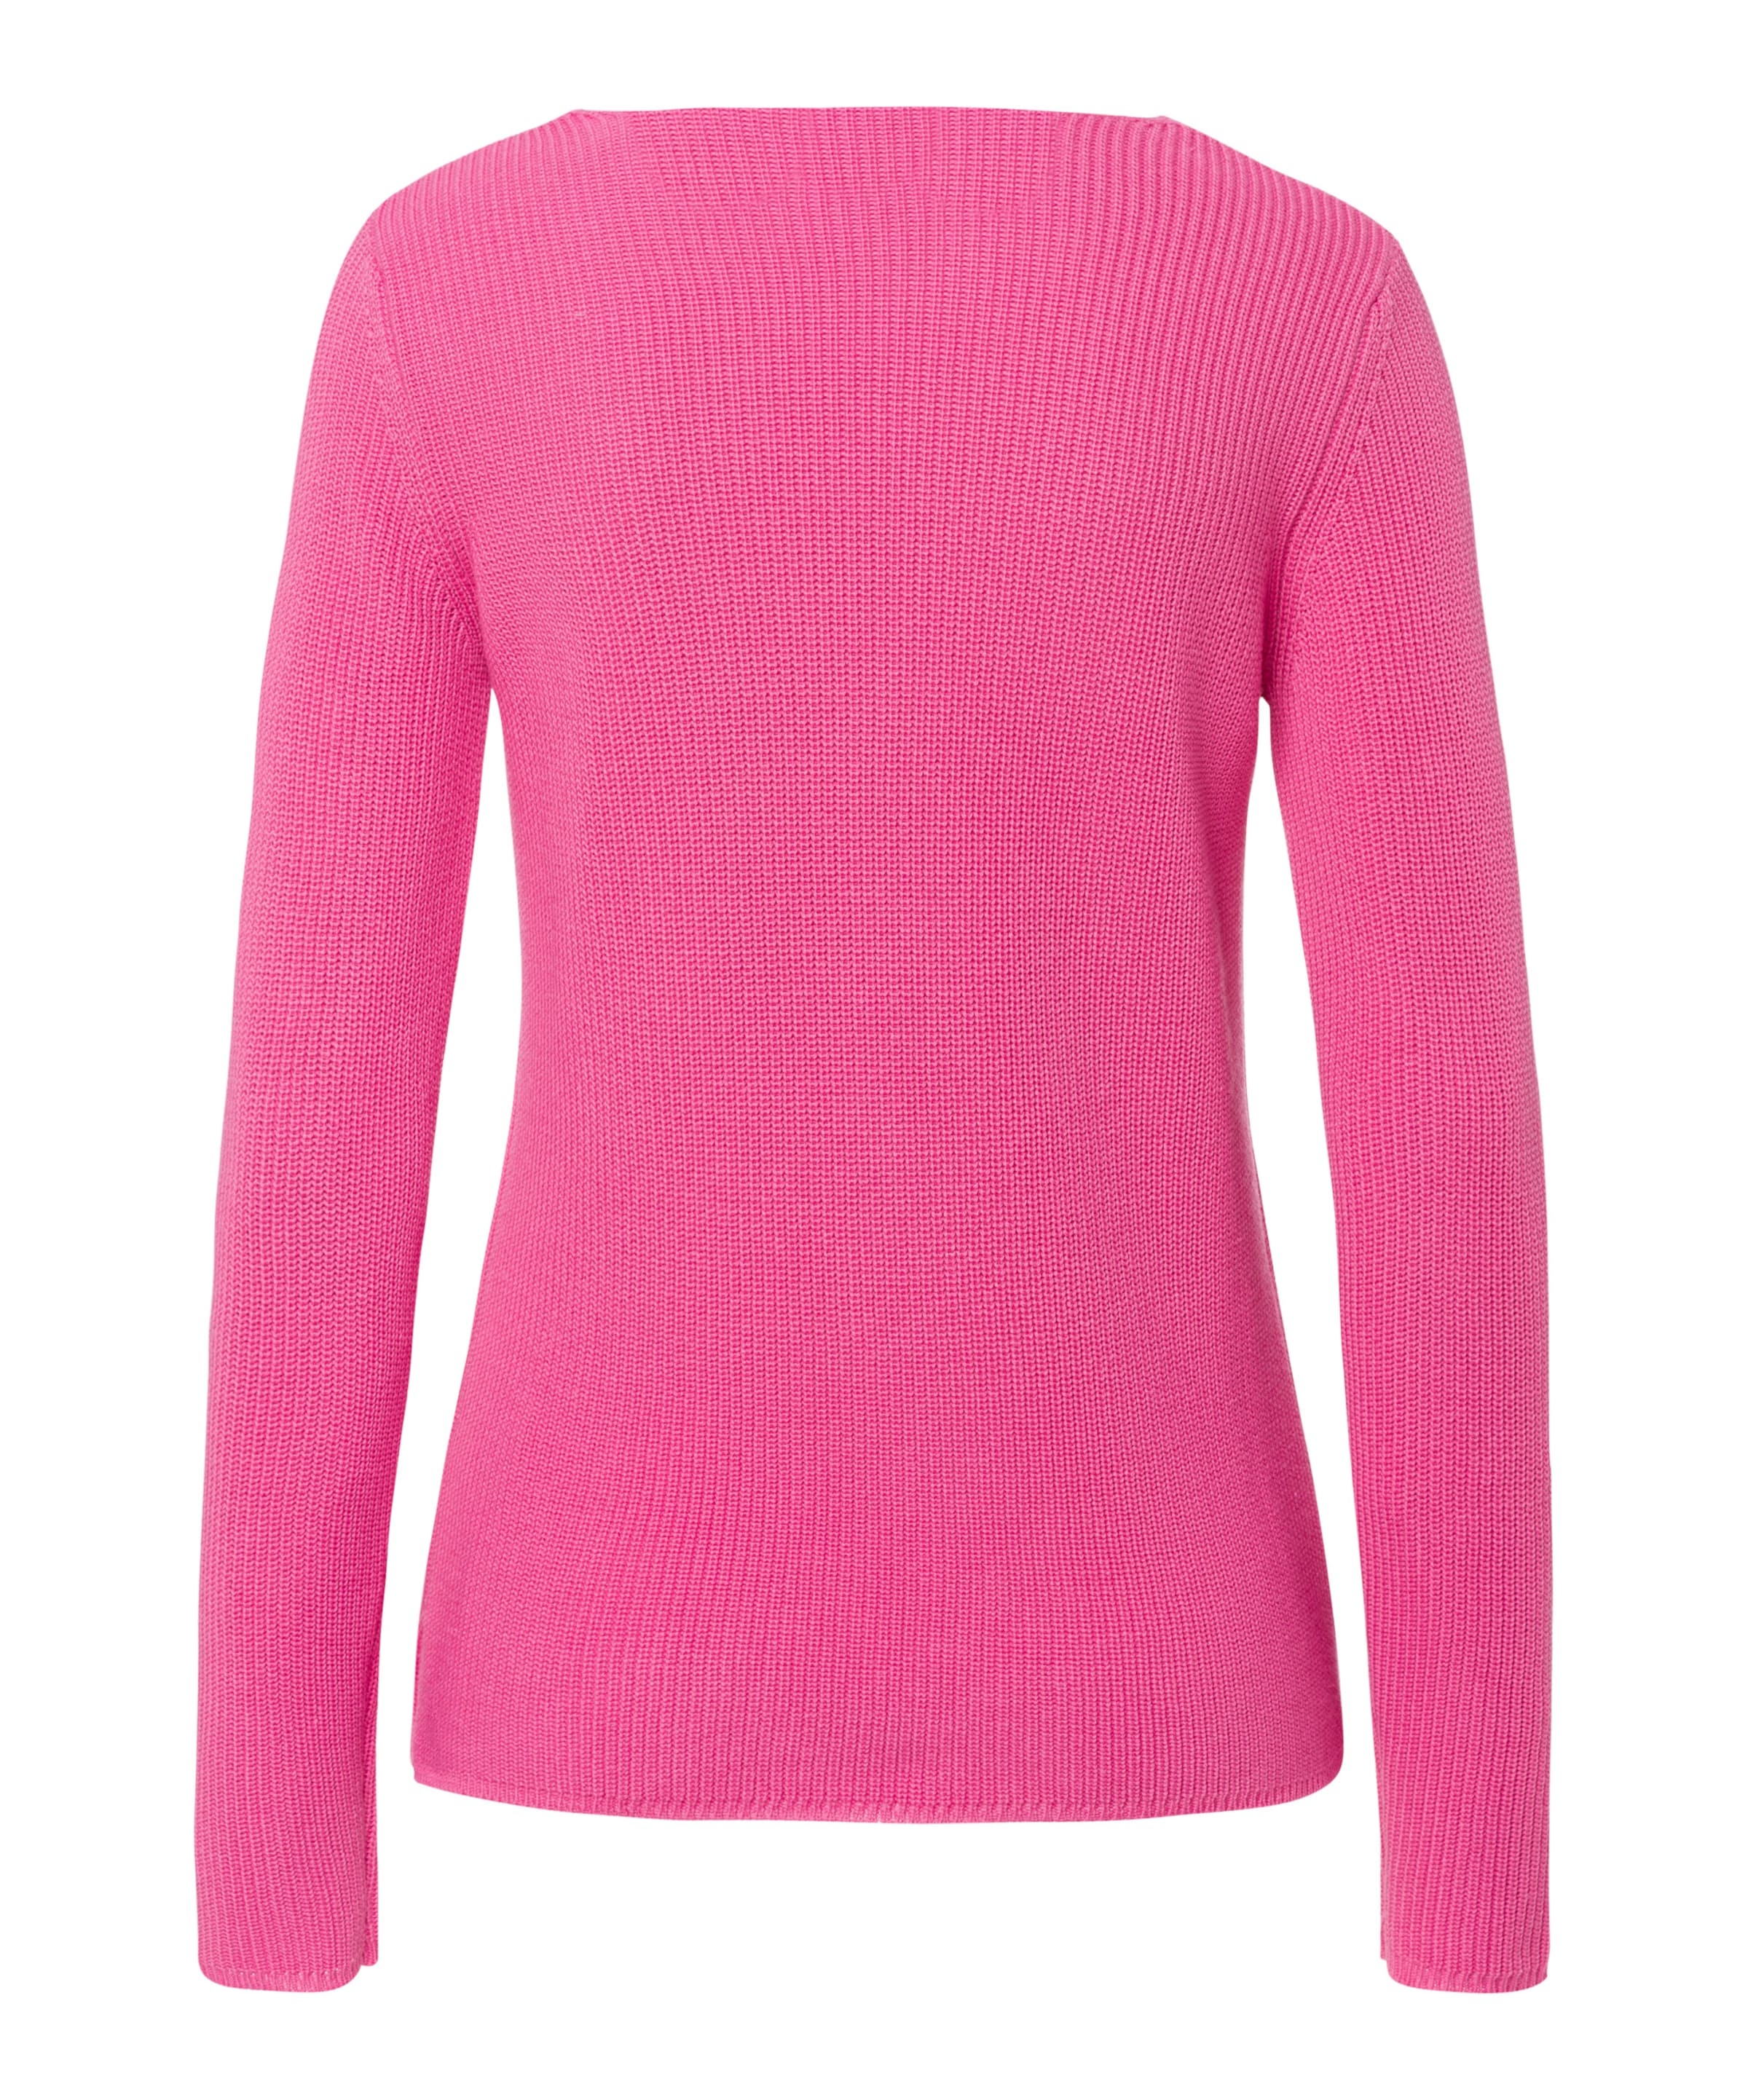 Pullover In Brax Dunkelpink 'lisa' EIWH9D2